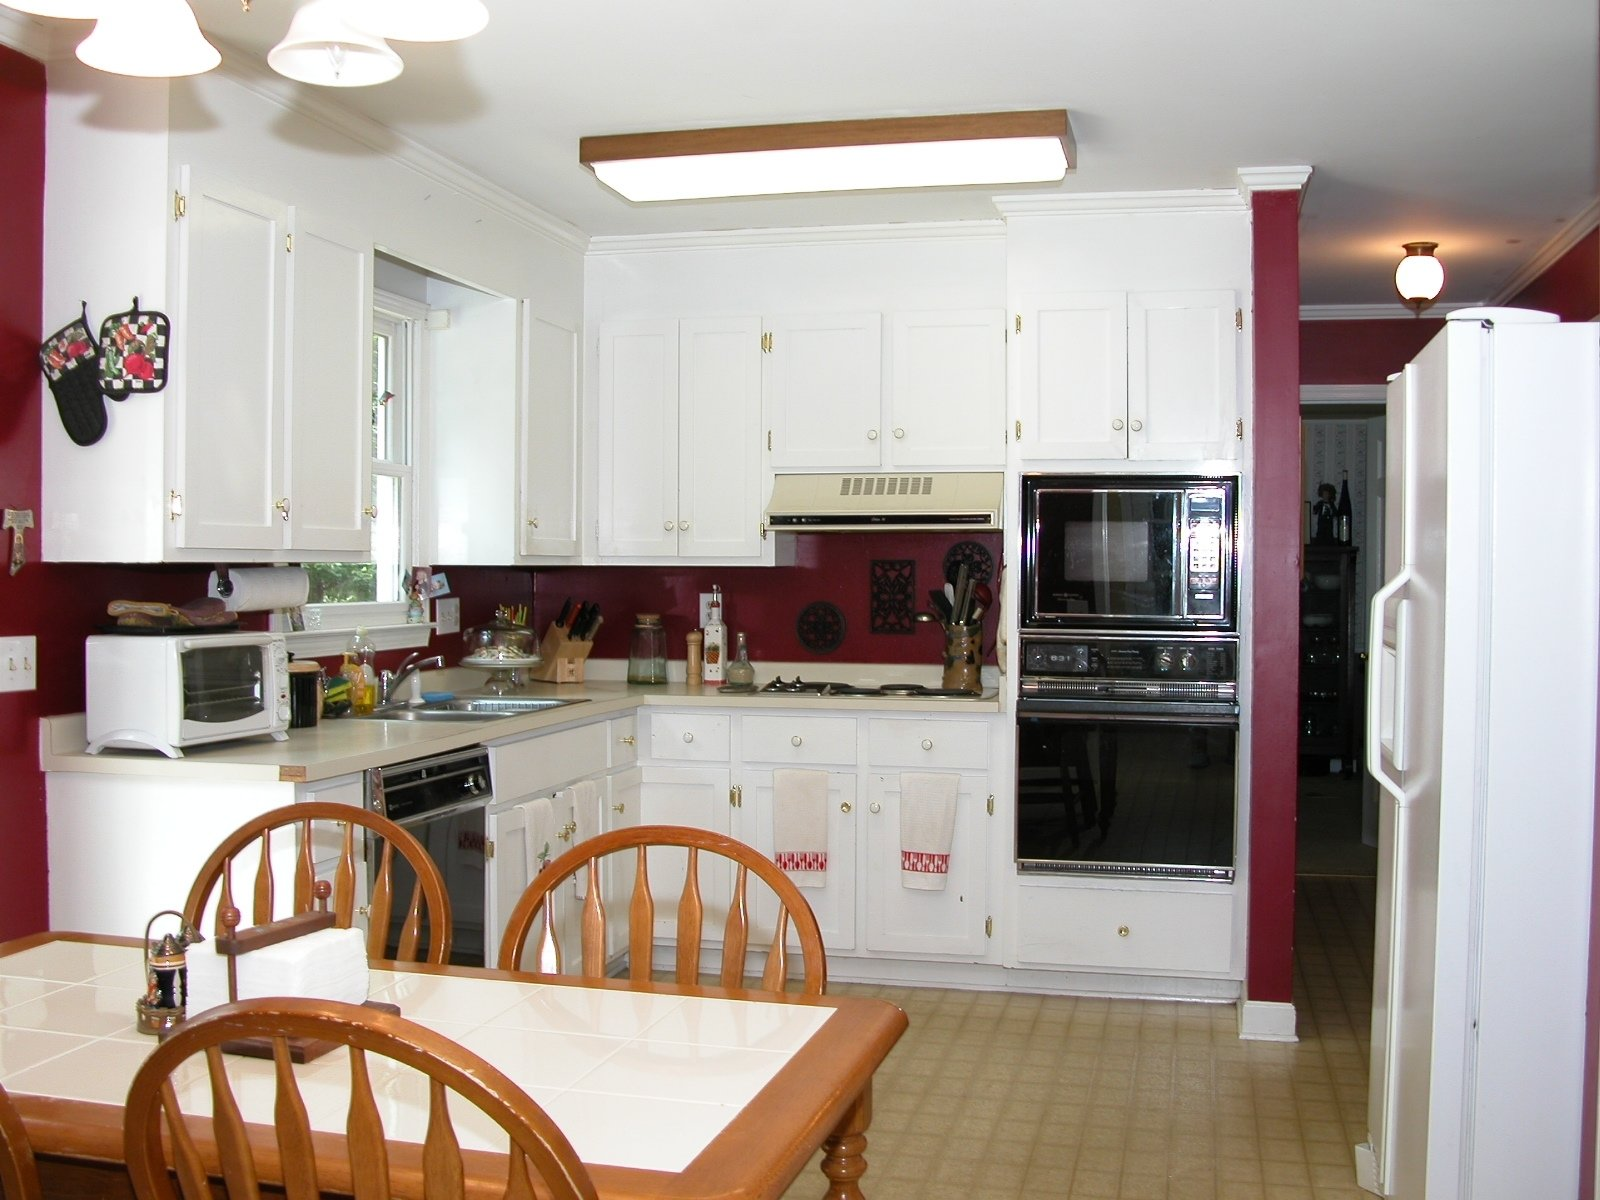 10 Most Recommended Small Eat In Kitchen Ideas splendid white u shaped modern kitchen design combined kitchen trash